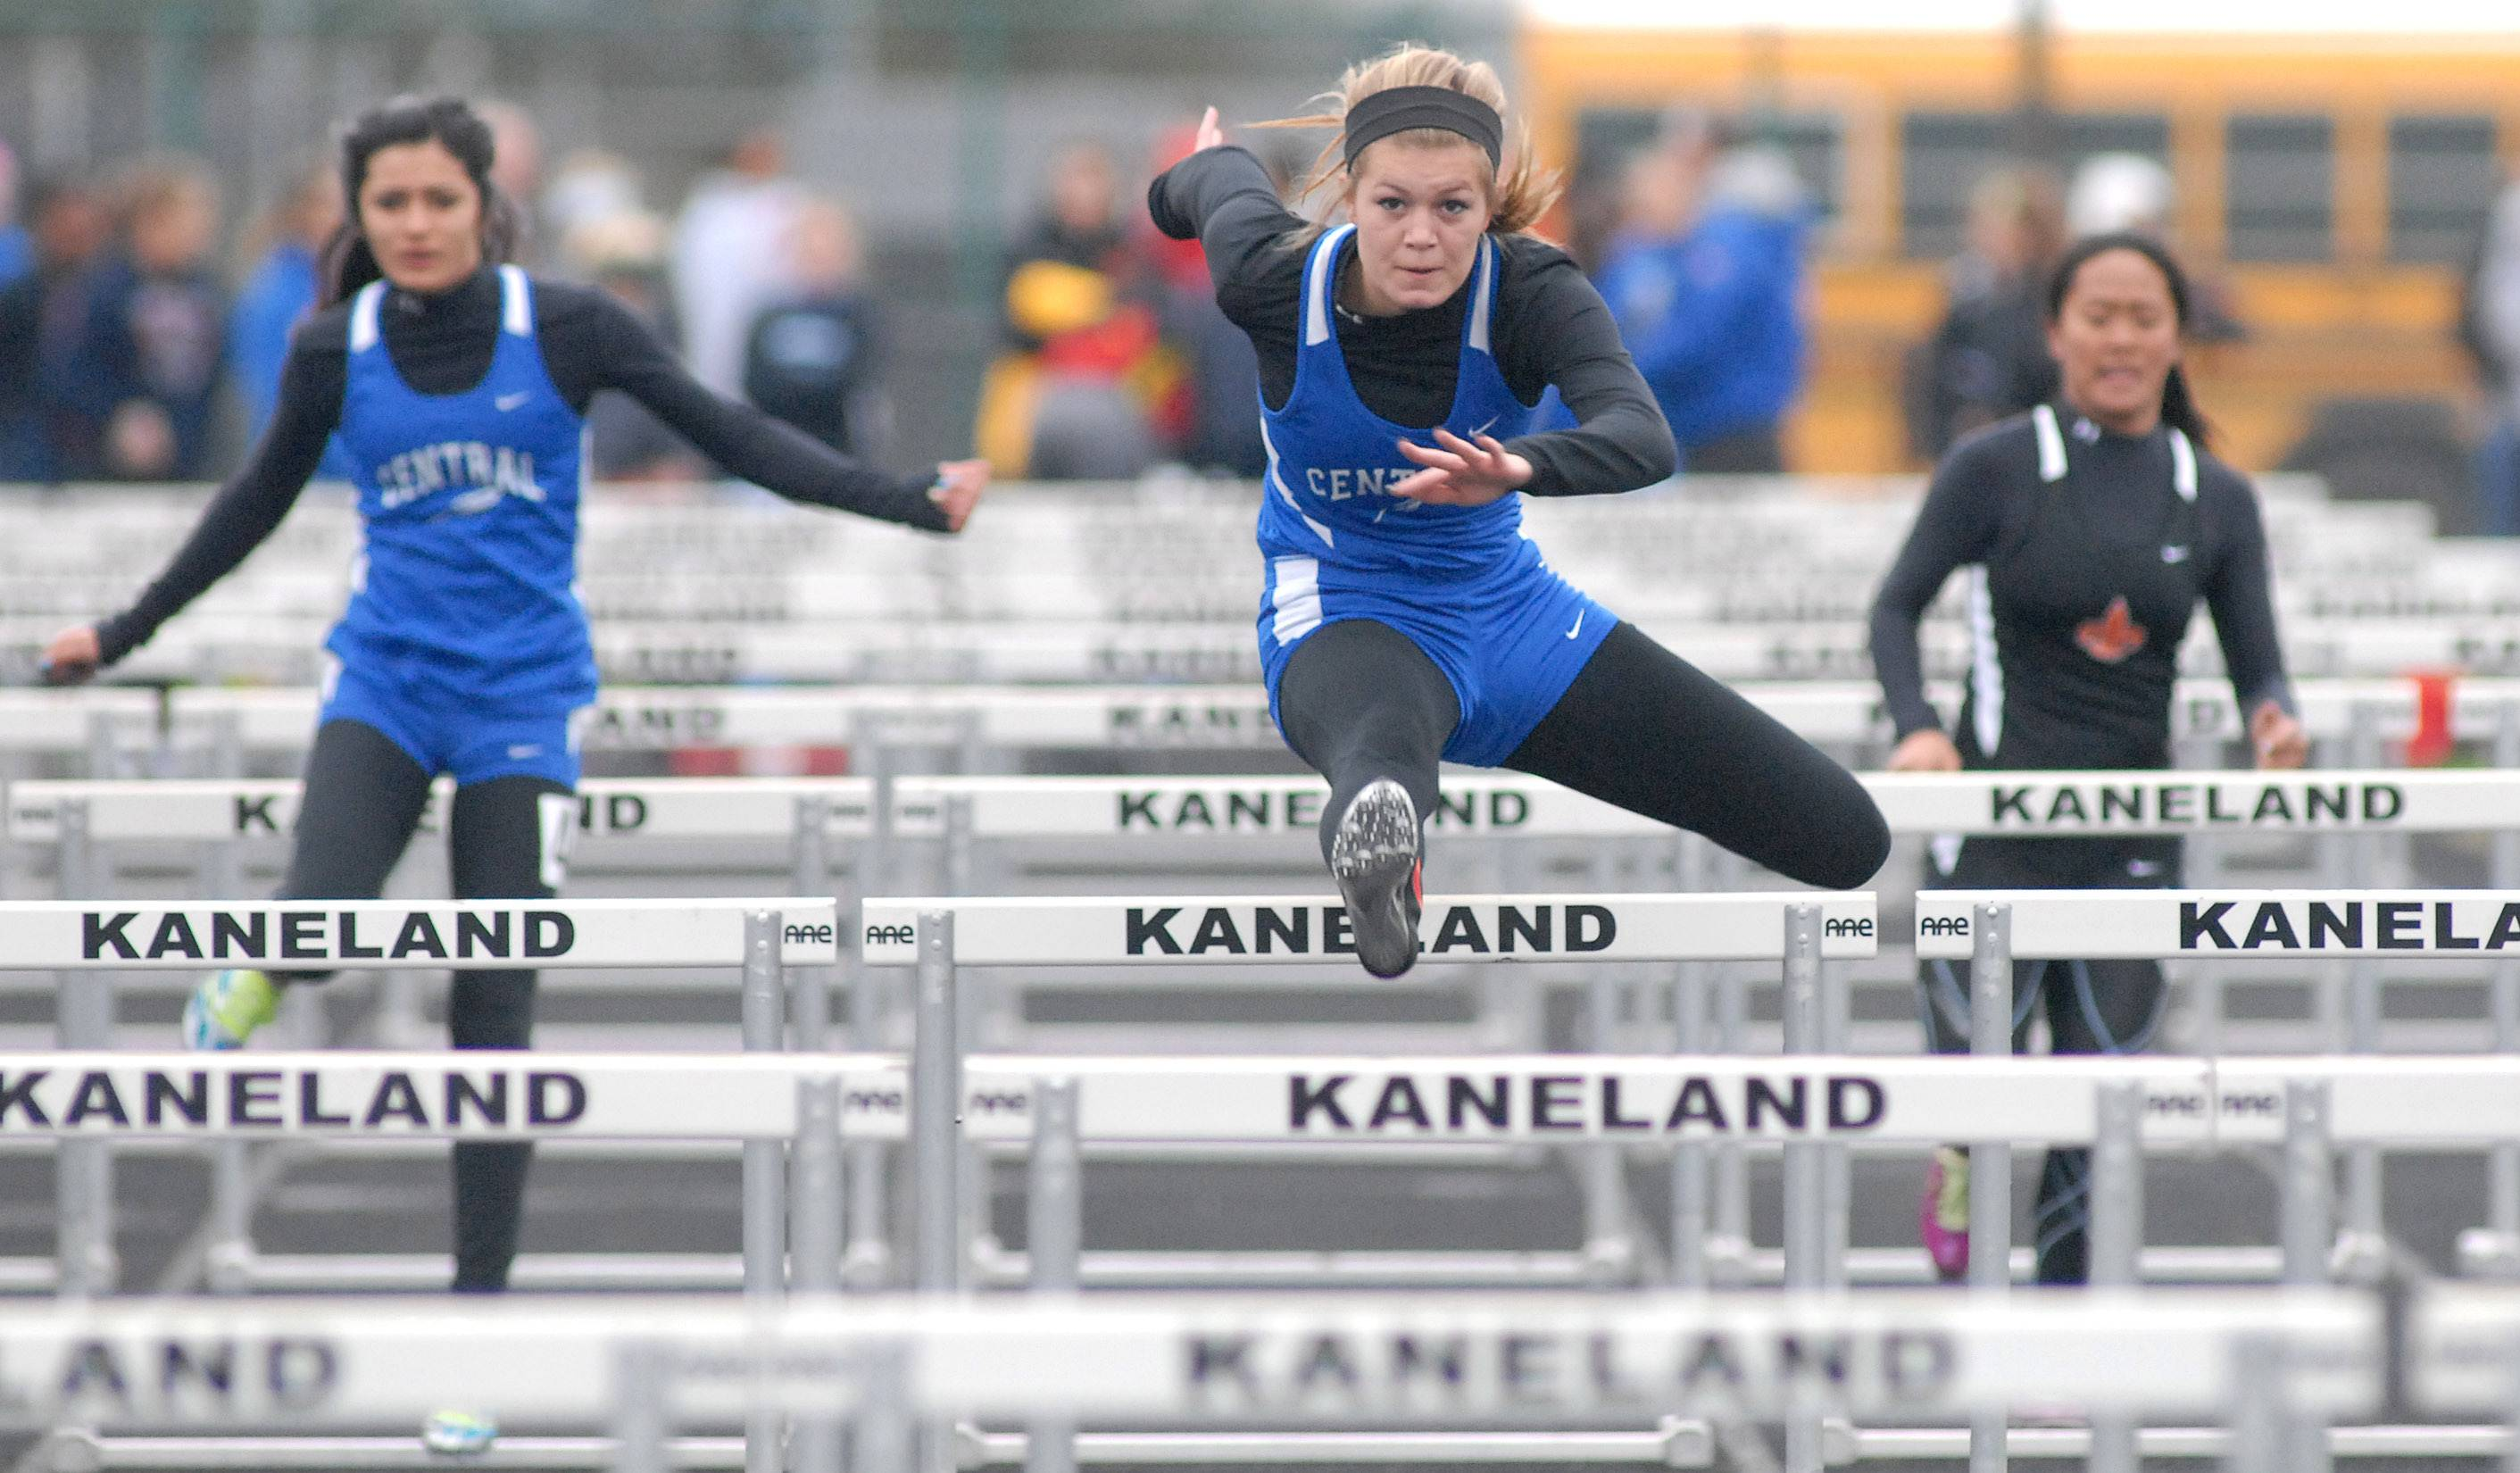 Burlington Central's Bryce Weinrich wins the first prelim of the 100-yard hurdles at Kaneland High School in Maple Park on Friday, May 2.